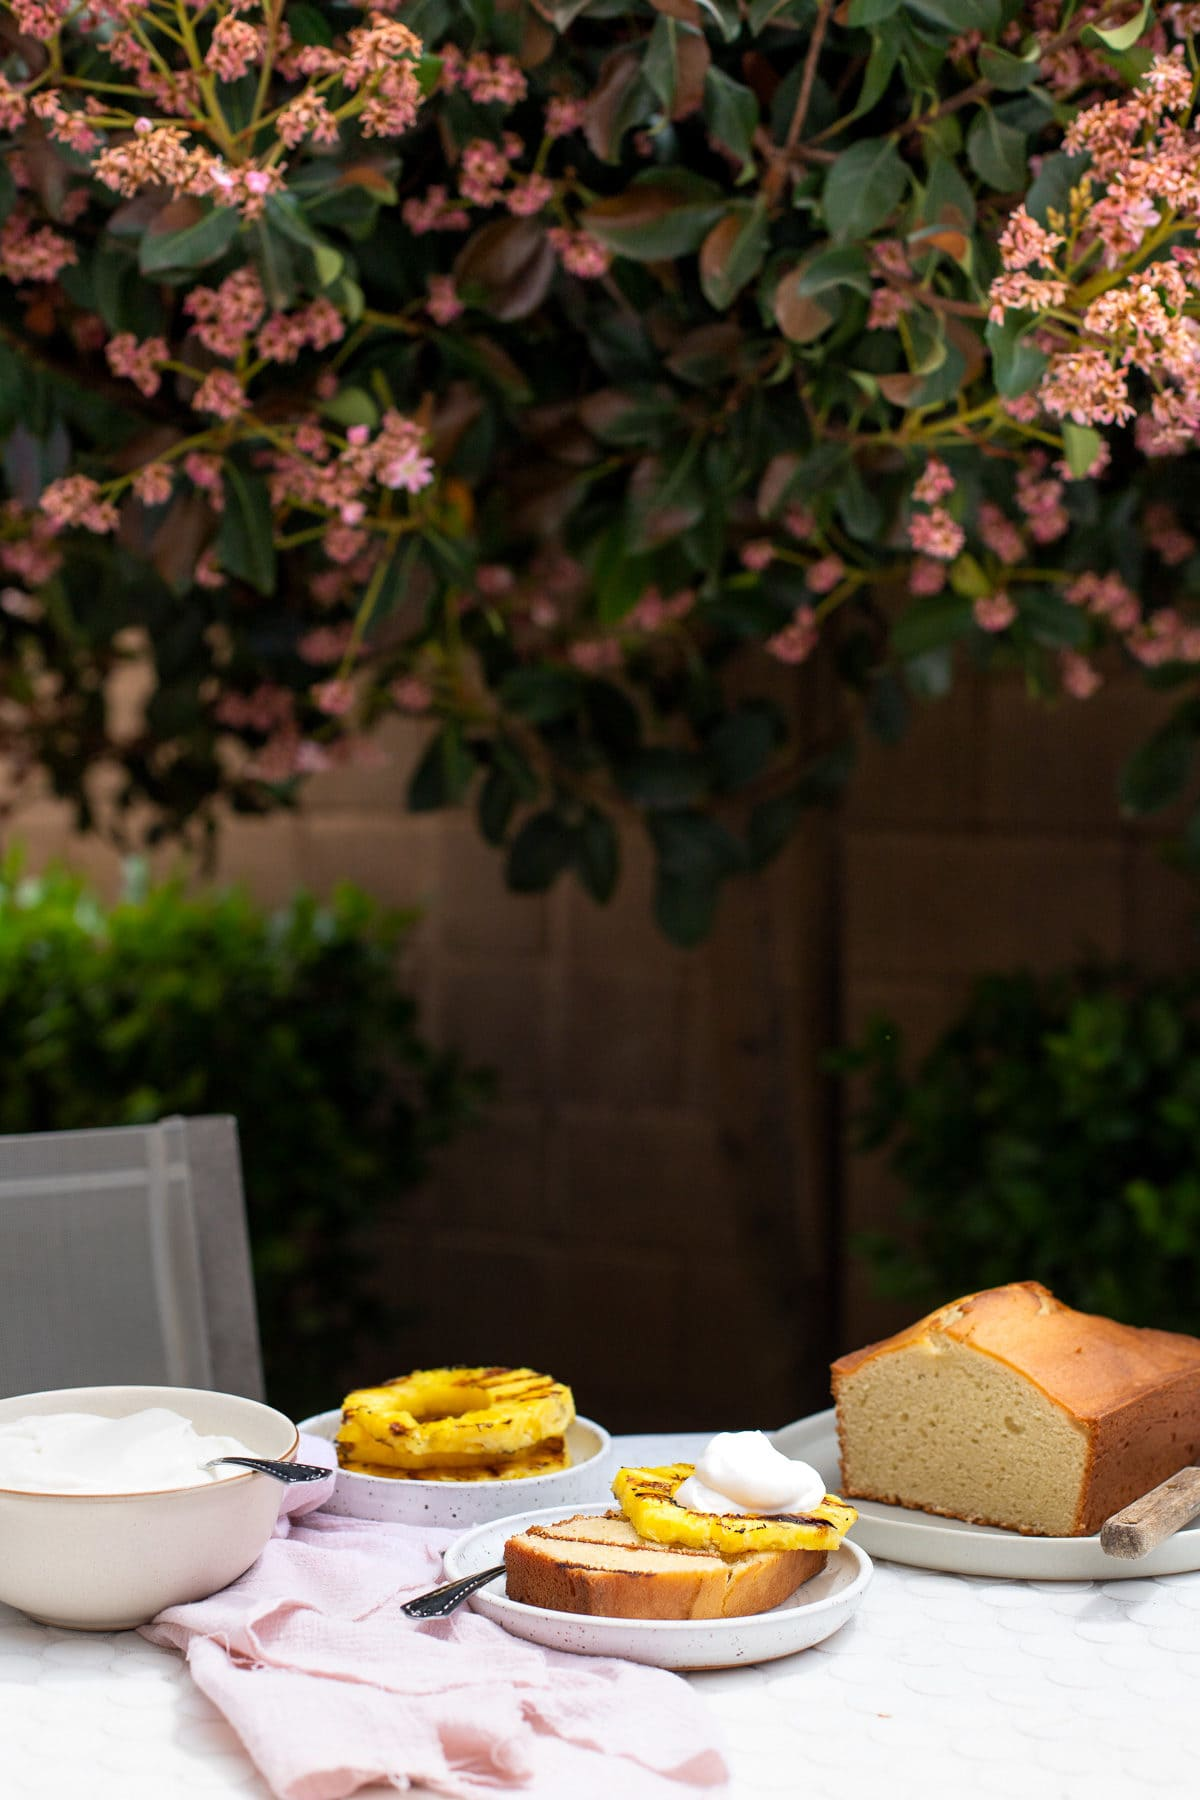 Pound cake being served with pineapple slices and whipped cream on a patio table.